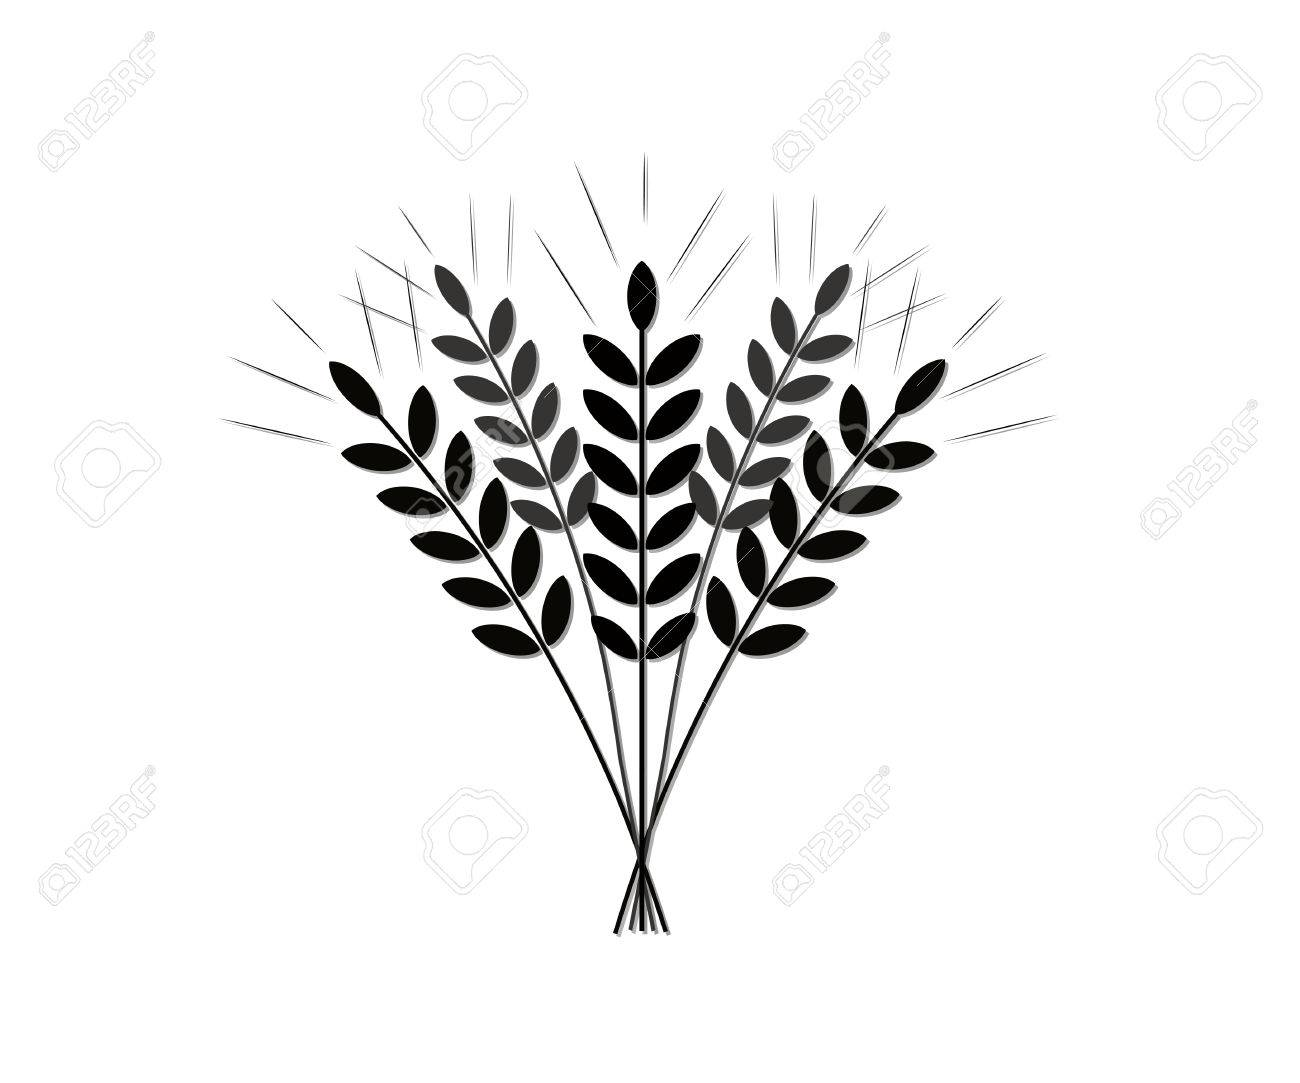 1300x1083 Silhouette (Icon) Of The Crop Of Agriculture (Grain Of Wheat